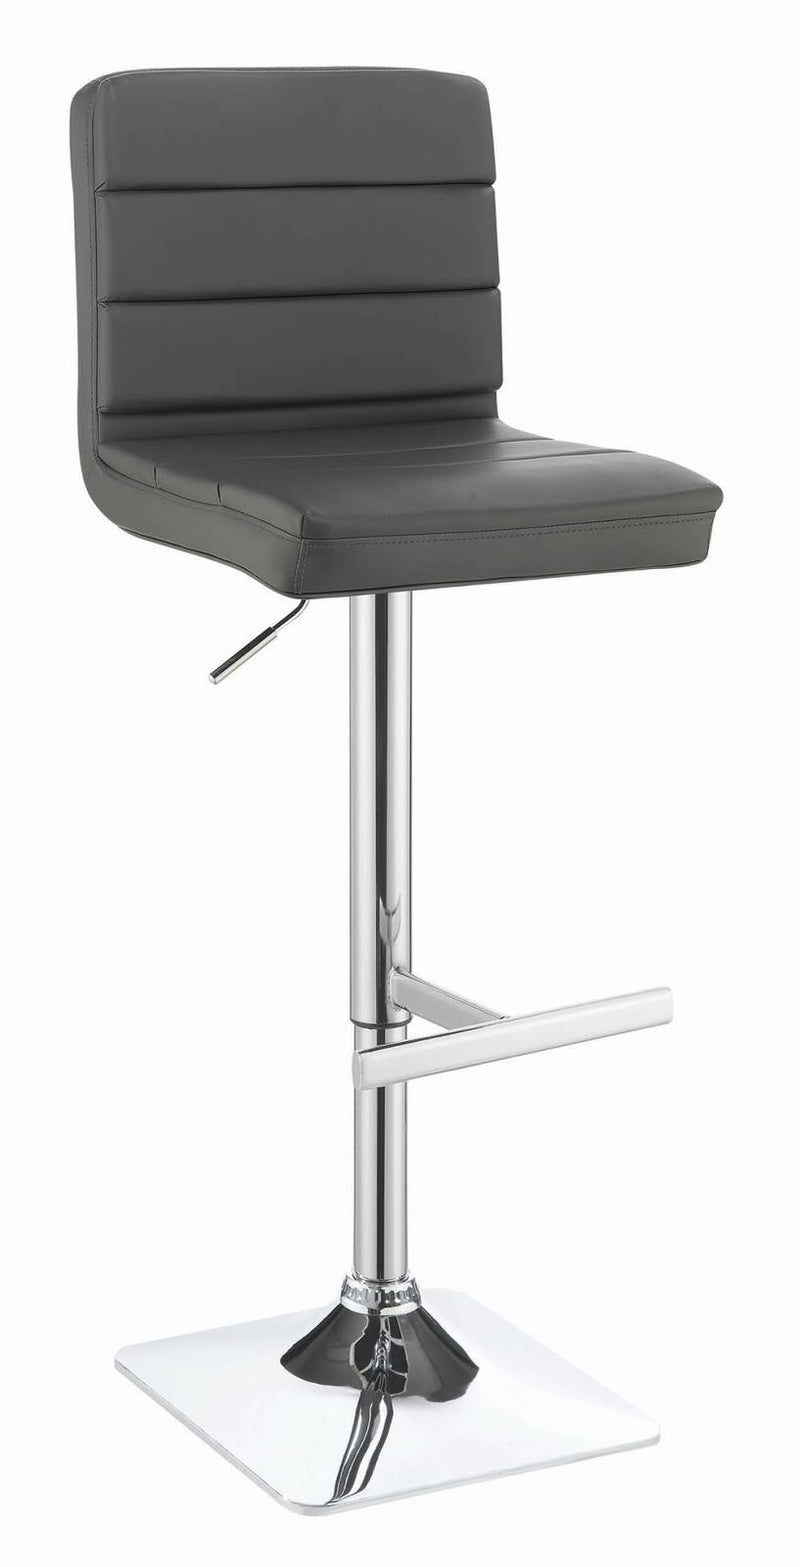 G120696 Contemporary Chrome Adjustable Bar Stool image